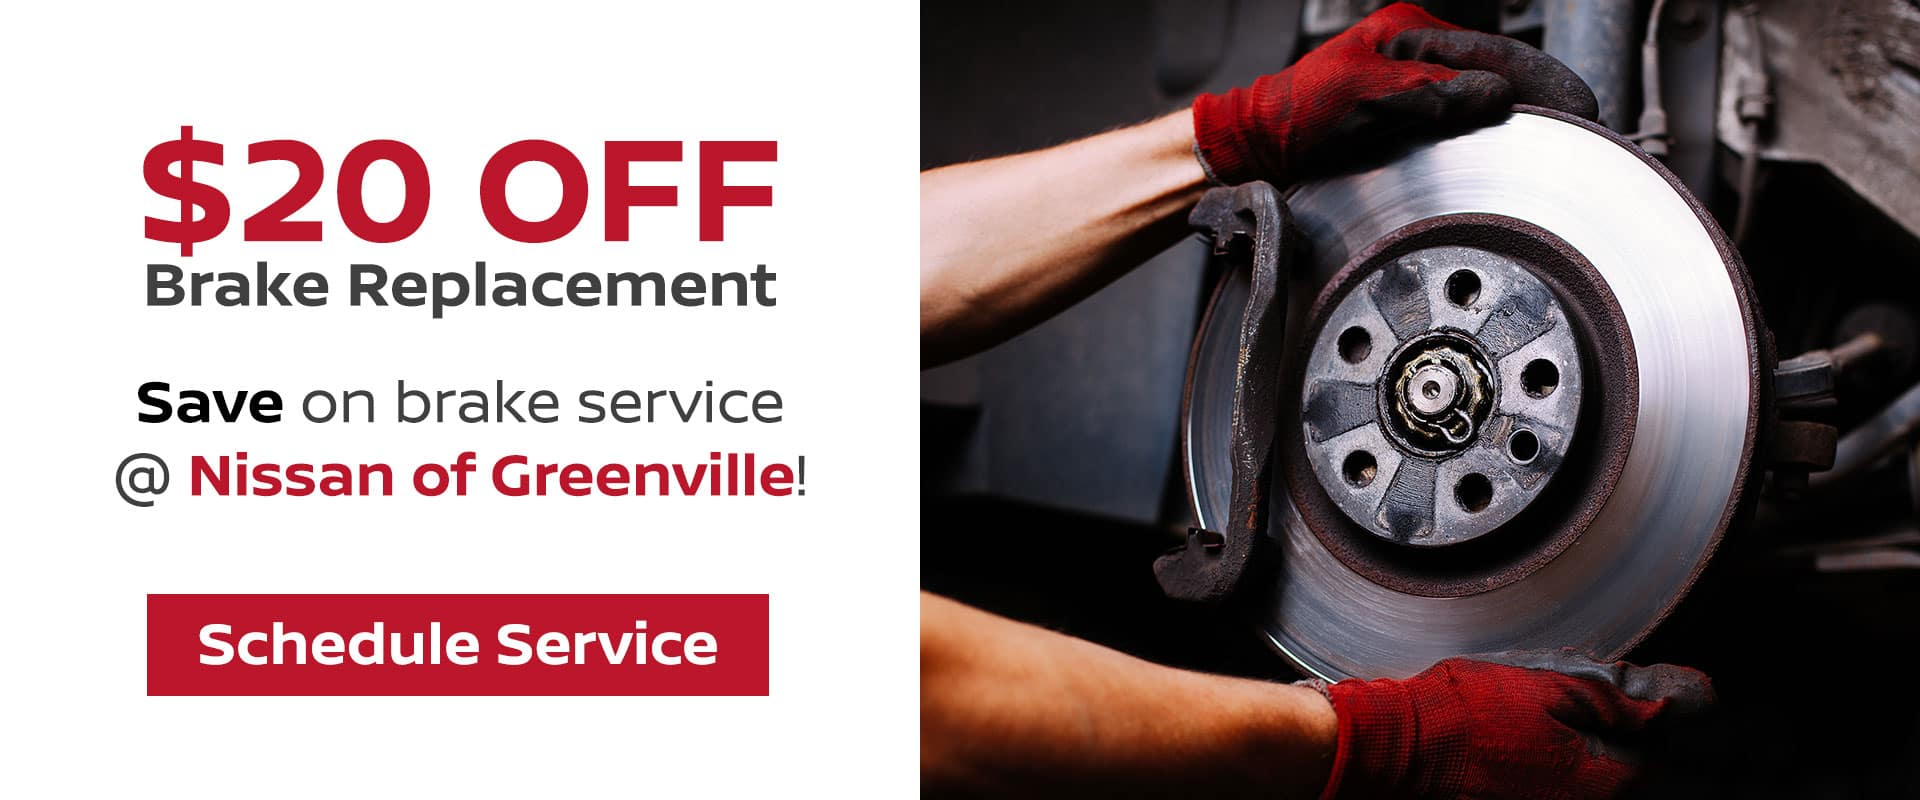 $20 Off Brake Replacement Service in Greenville